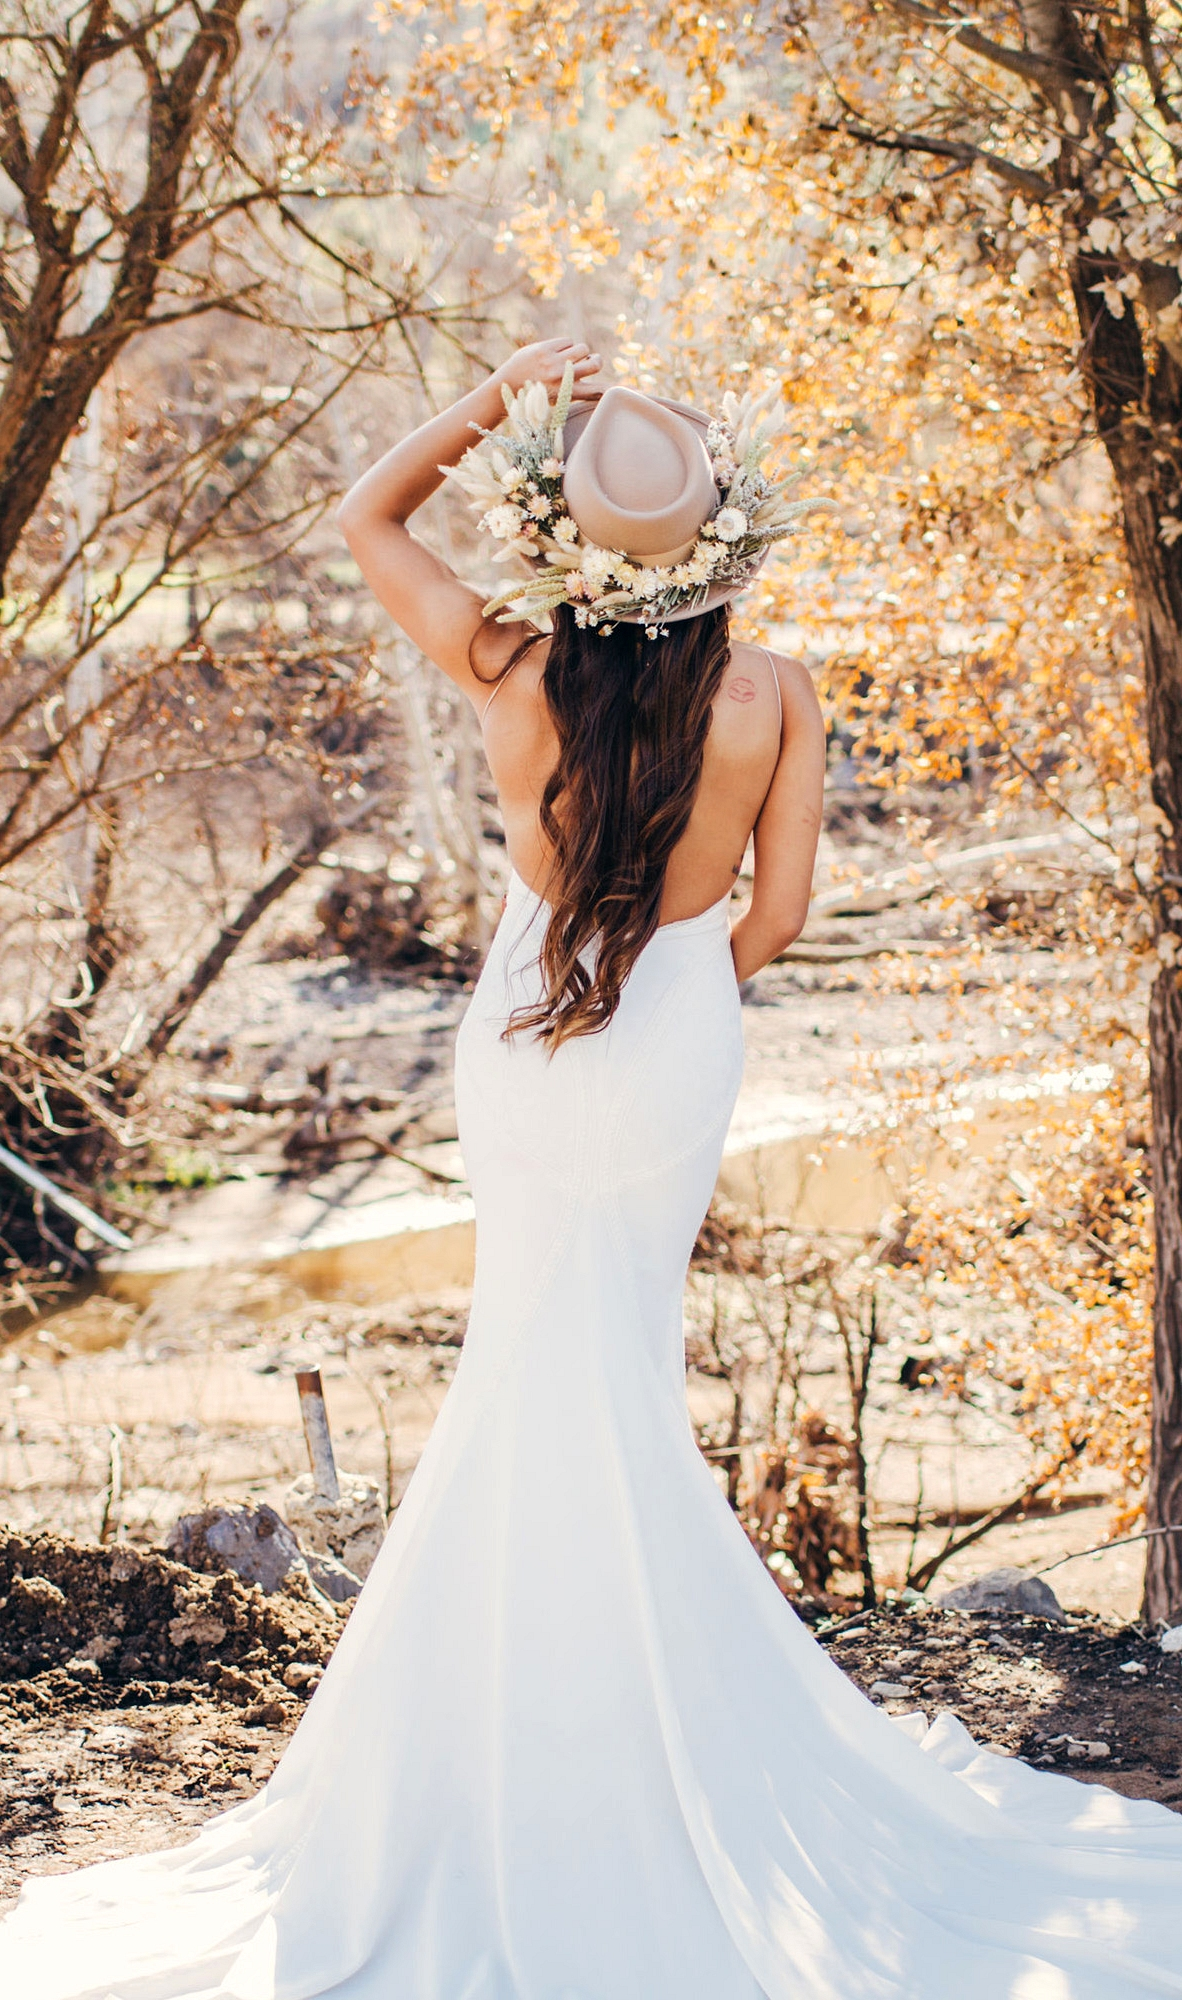 Lovers Society x Green Wedding Shoes Wyatt Wedding Dress with a floral hat